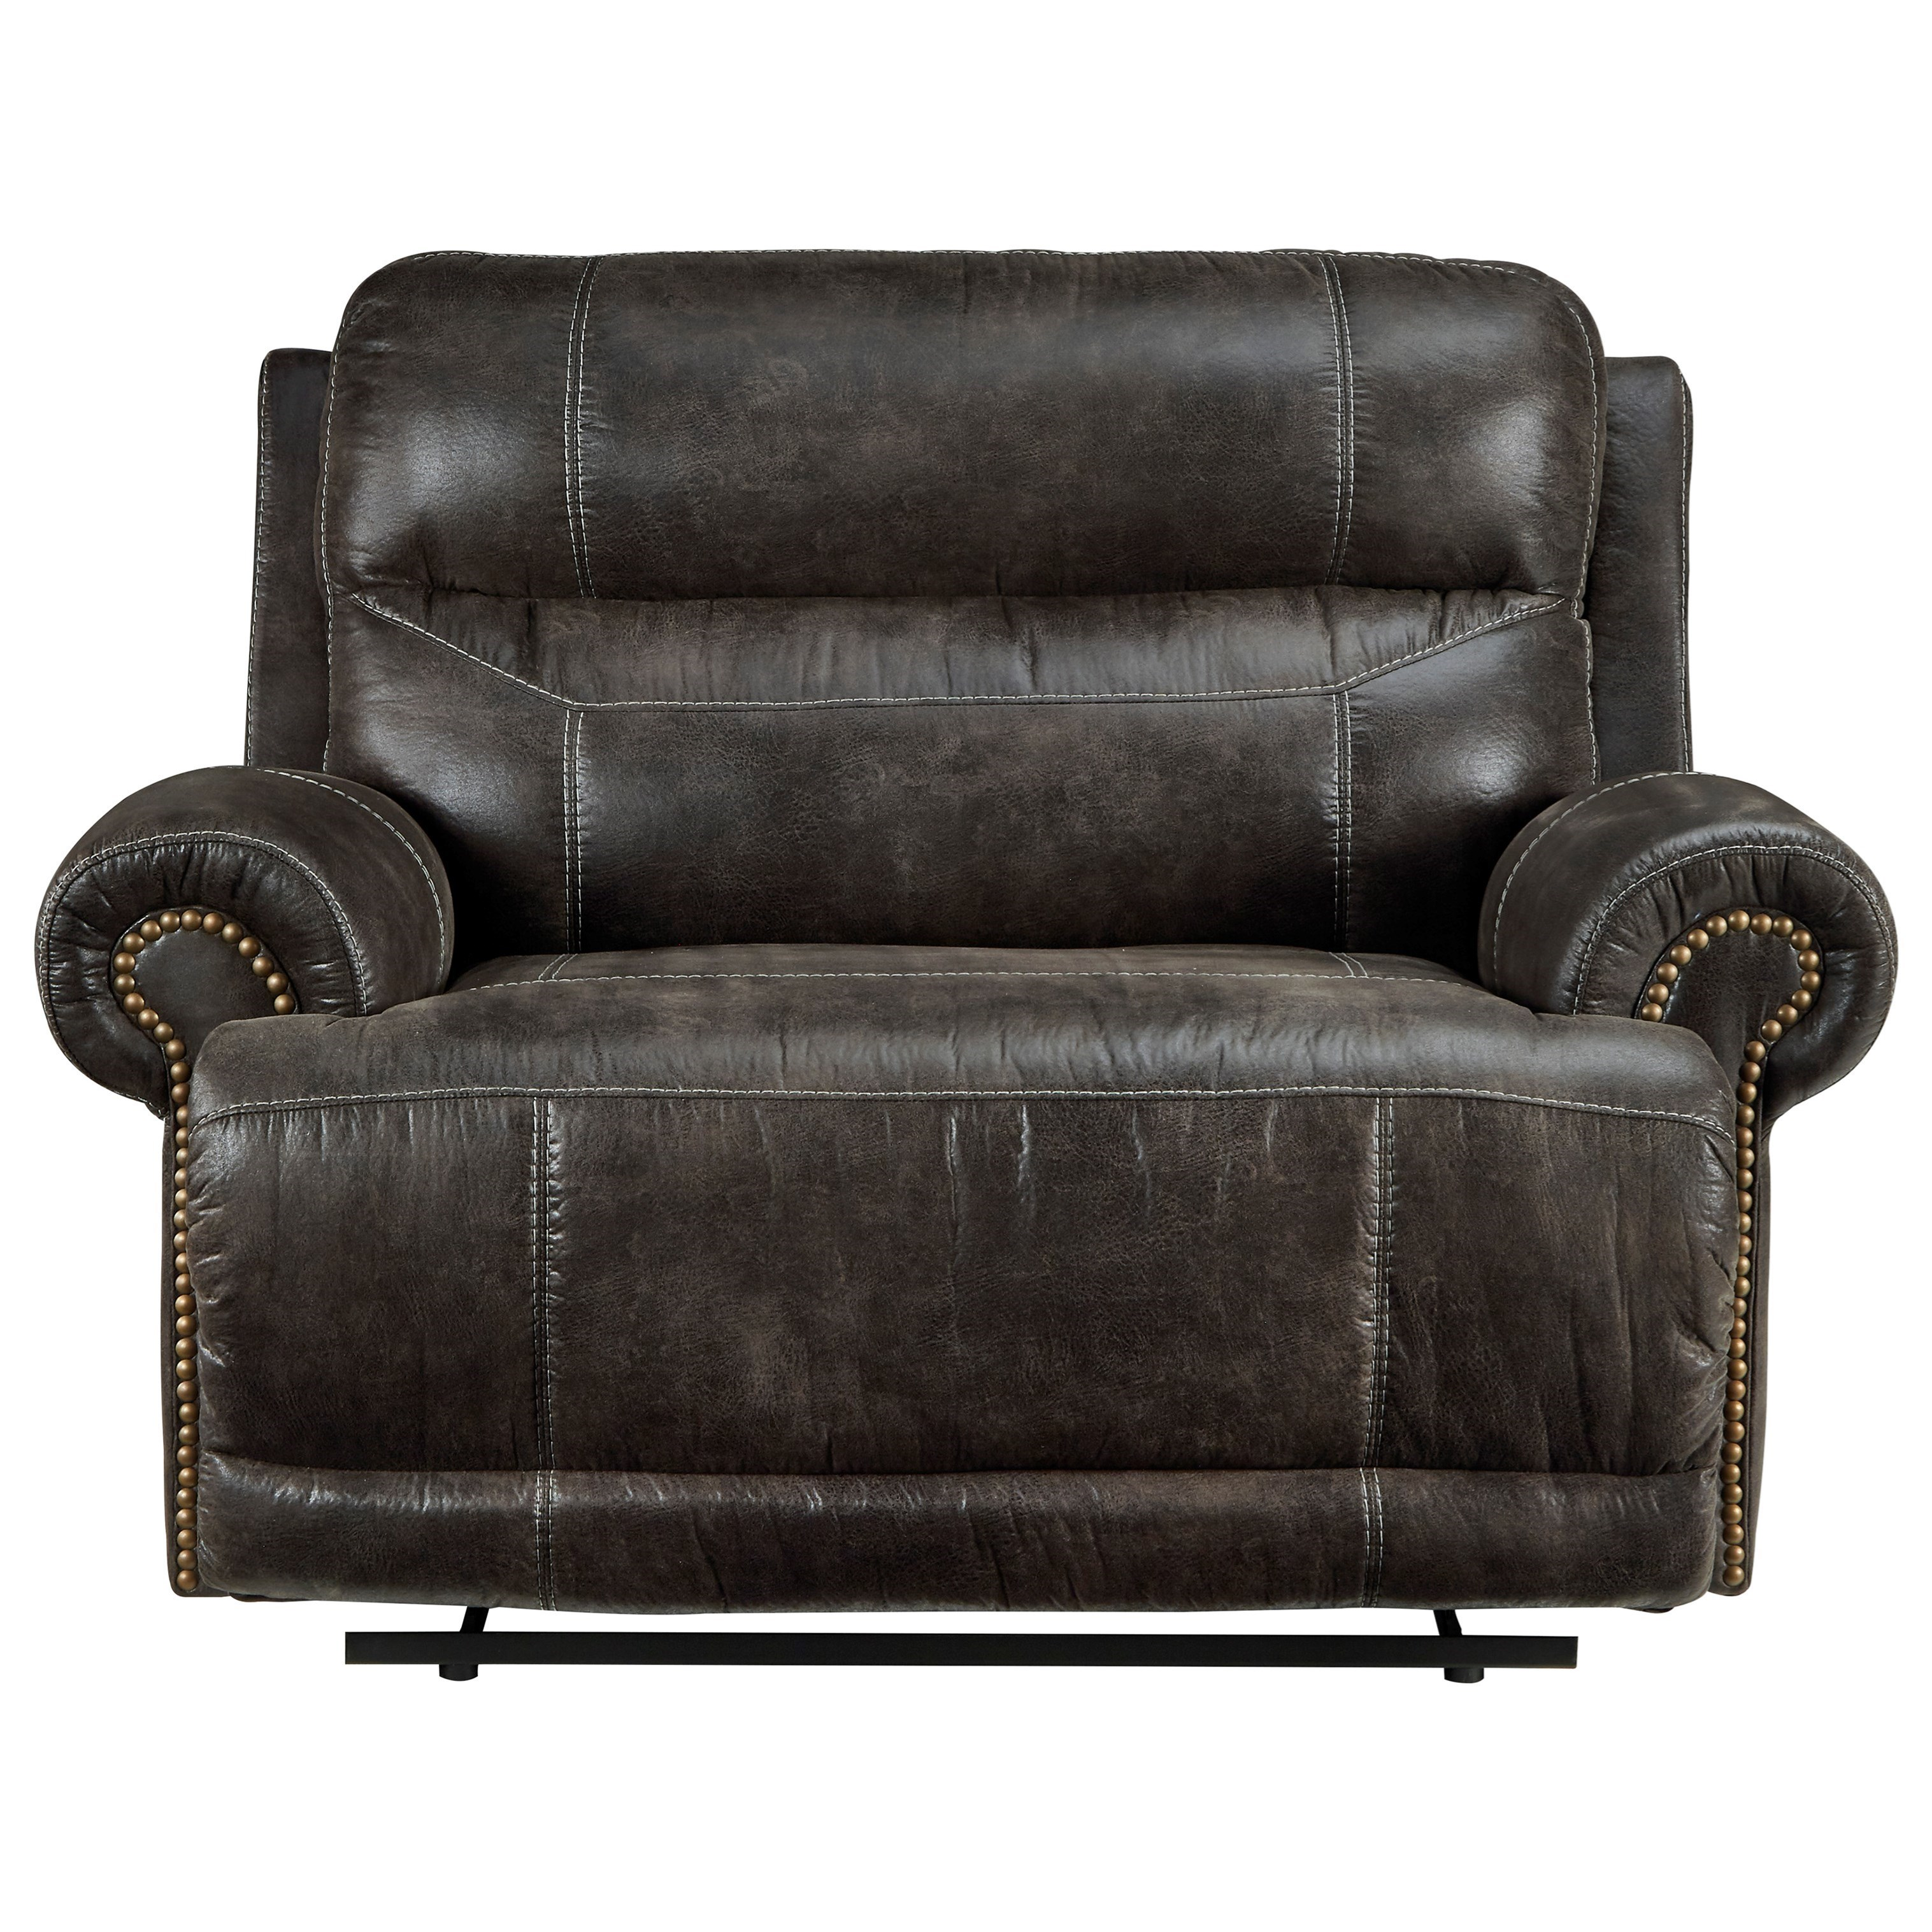 Grearview Oversized Power Recliner by Ashley Signature Design at Rooms and Rest